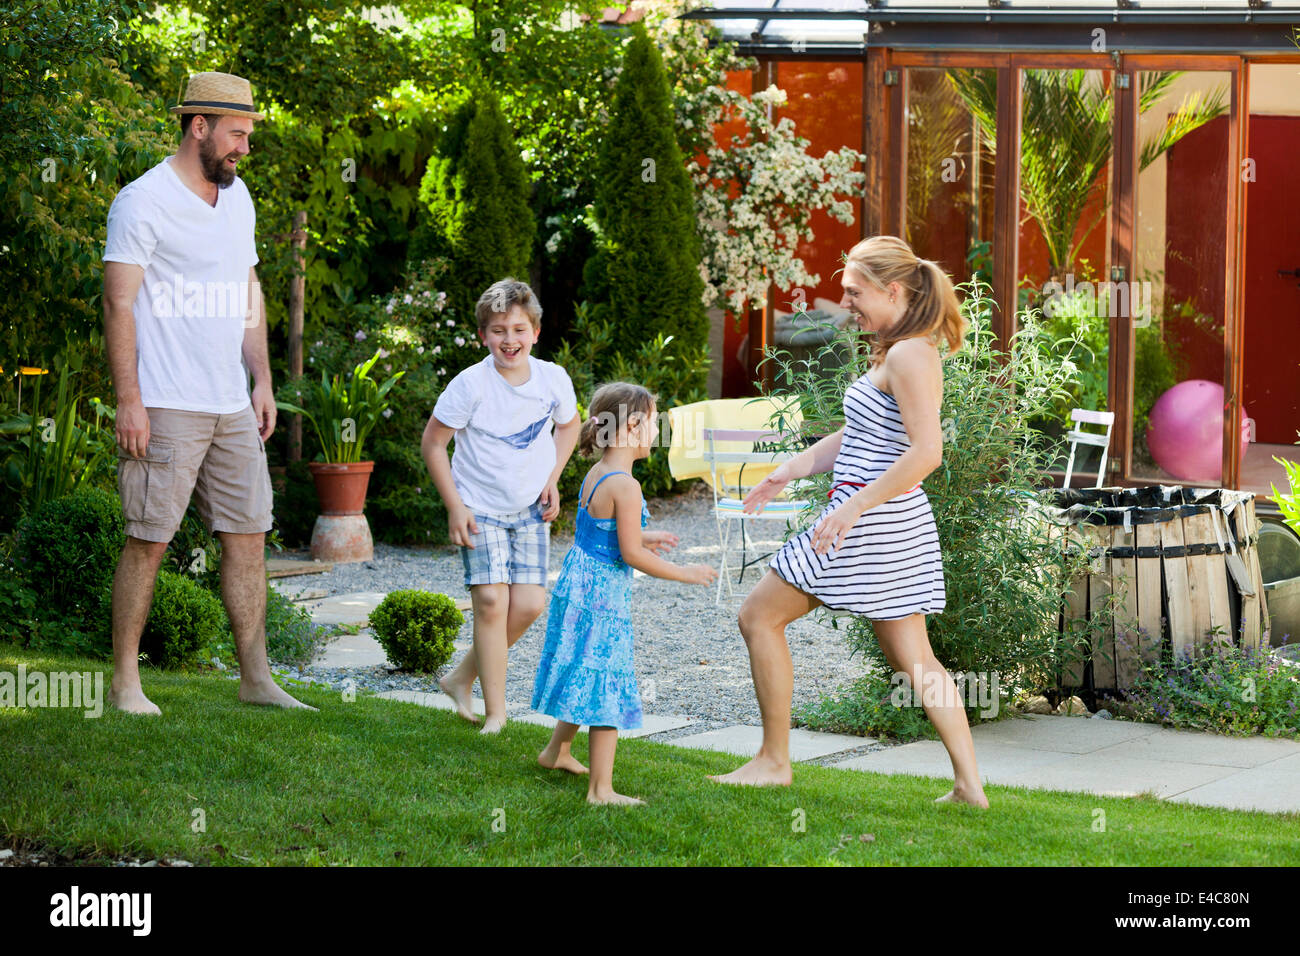 Family with two children in the garden fooling around, Munich, Bavaria, Germany - Stock Image